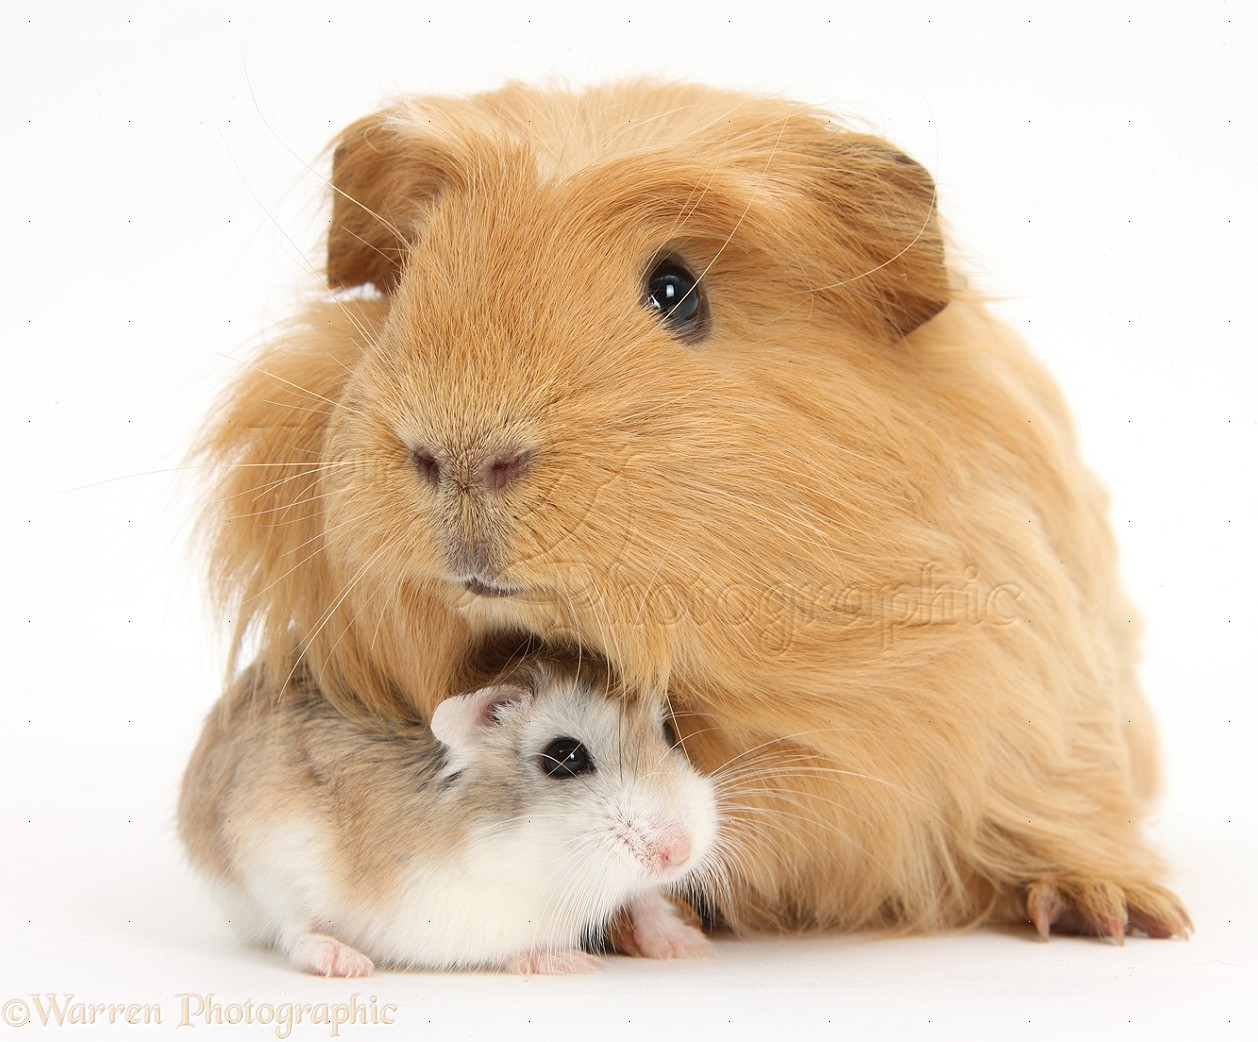 Uncategorized Hamsters And Guinea Pigs ginger guinea pig and roborovski hamster photo wp39332 puppy red pig